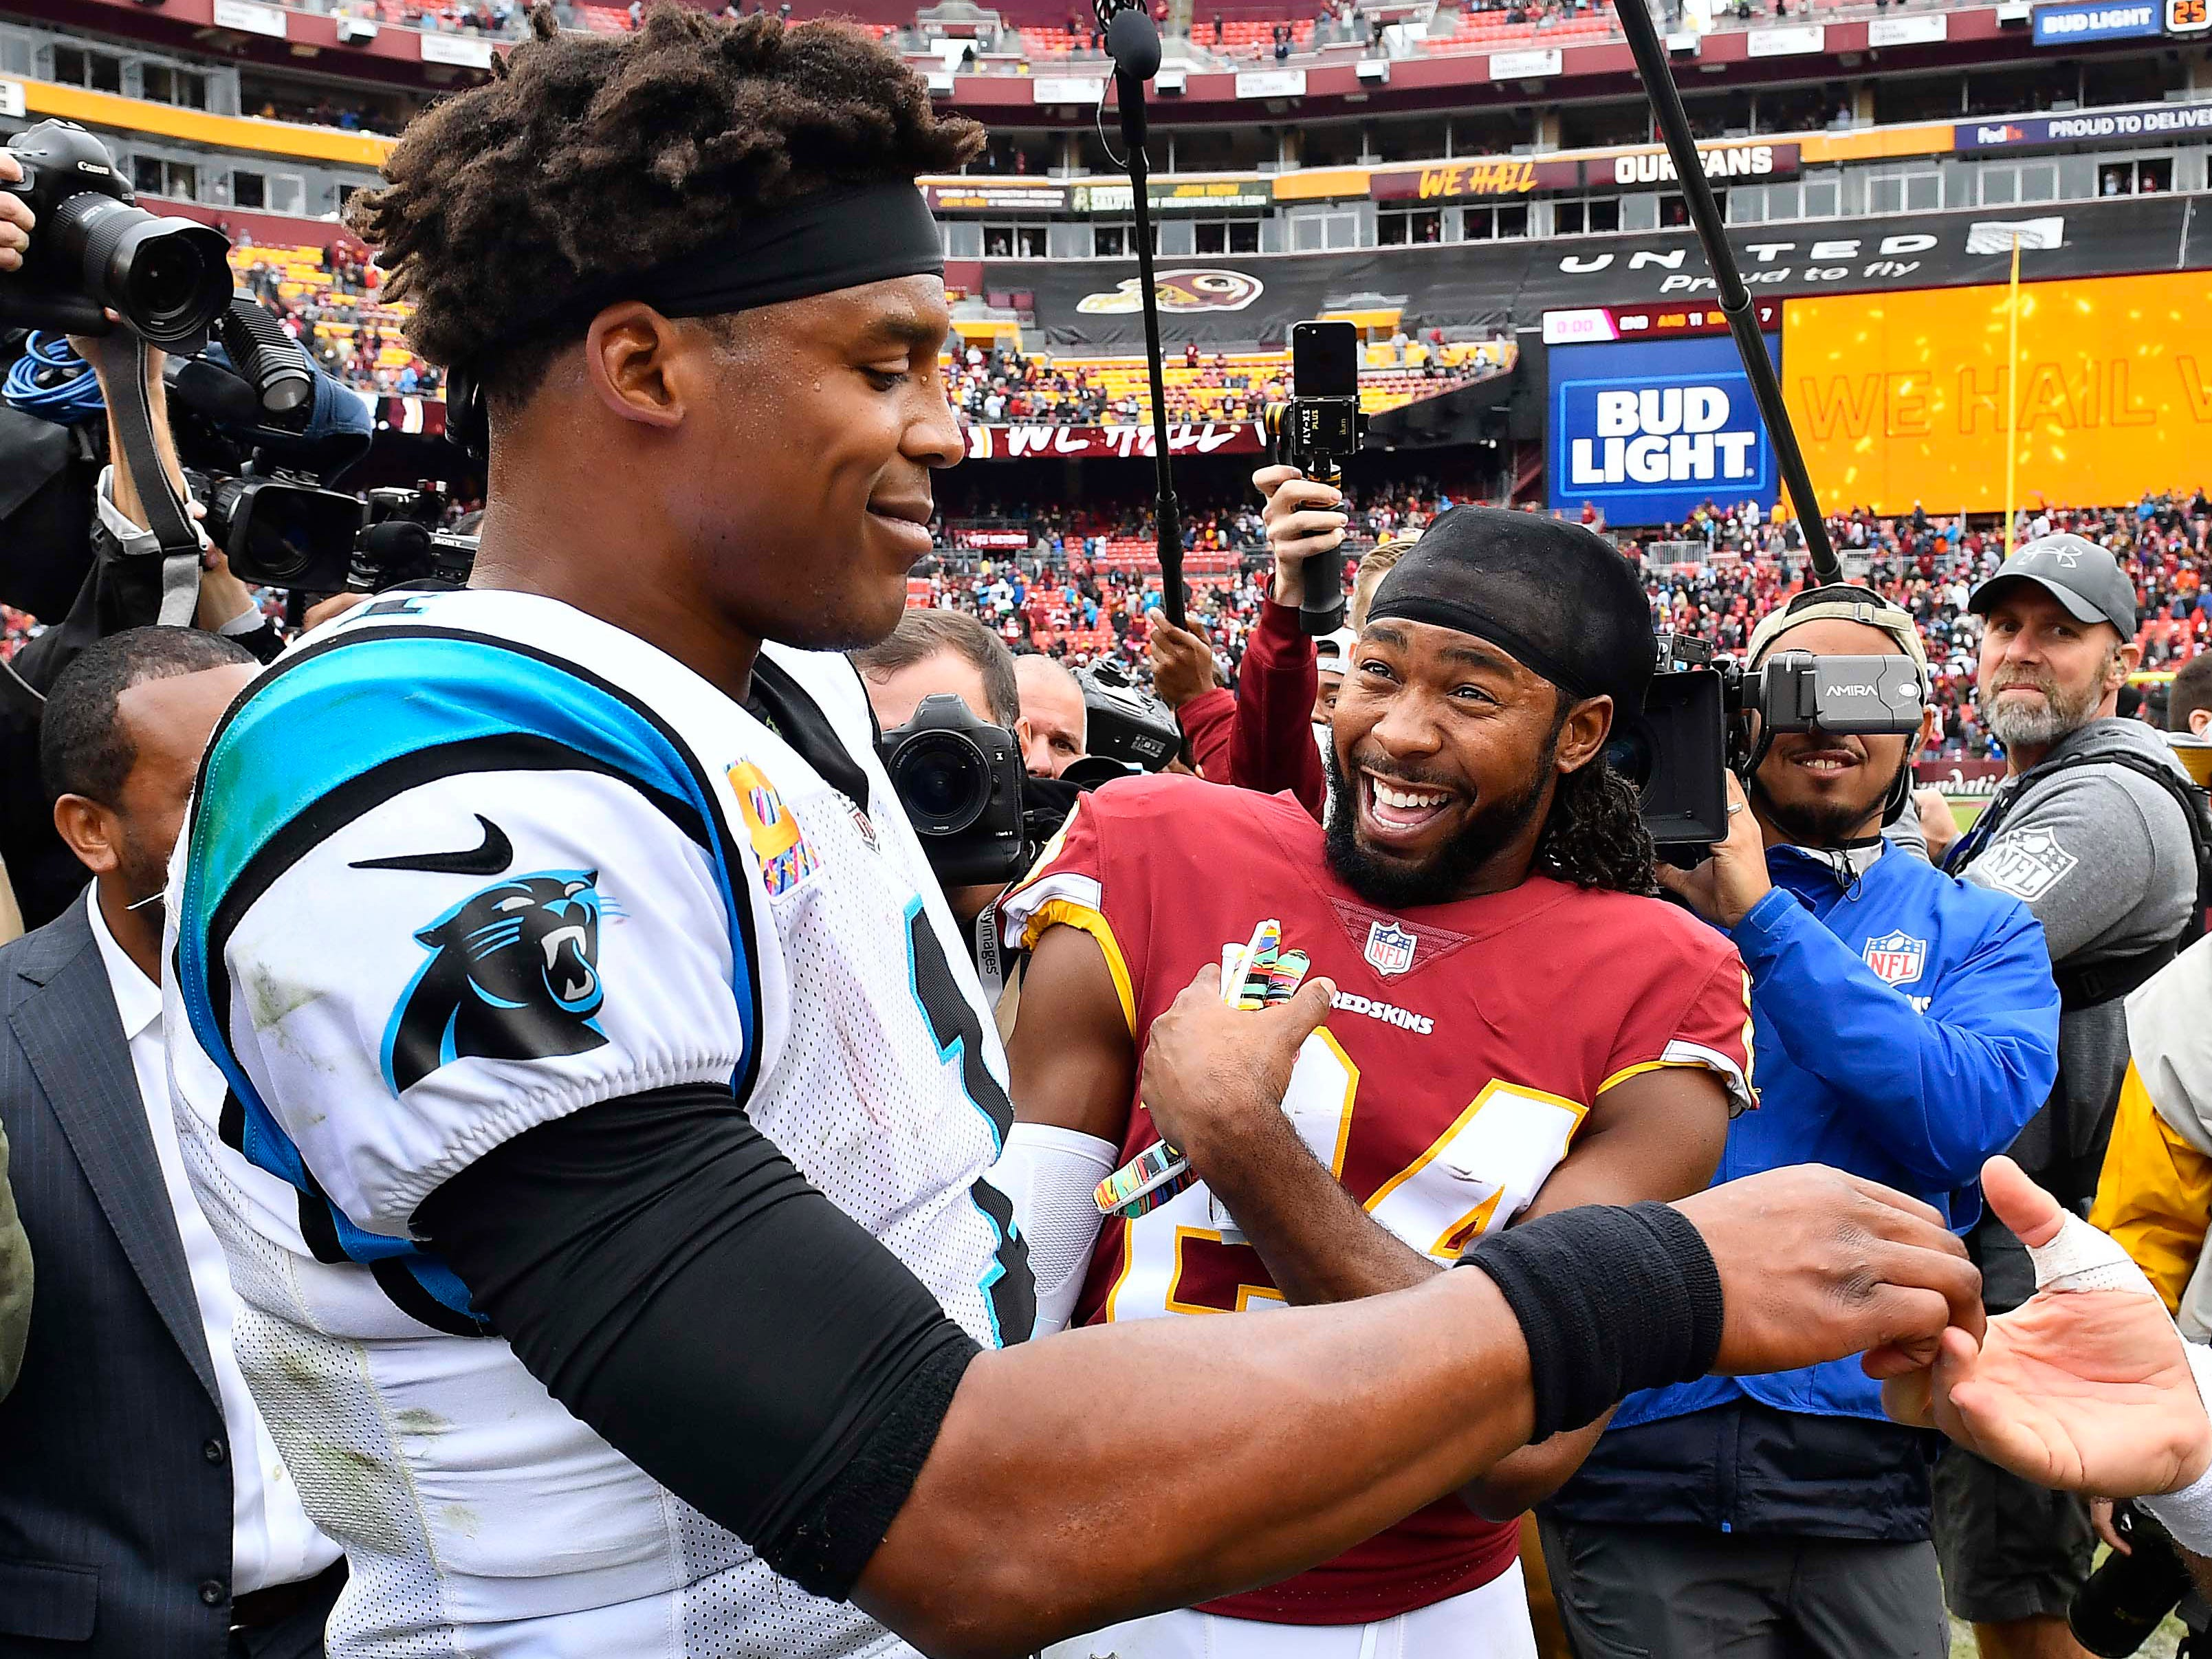 Washington Redskins cornerback Josh Norman talks with former teammate and Carolina Panthers quarterback Cam Newton after their game at FedEx Field. The Redskins won, 23-17.